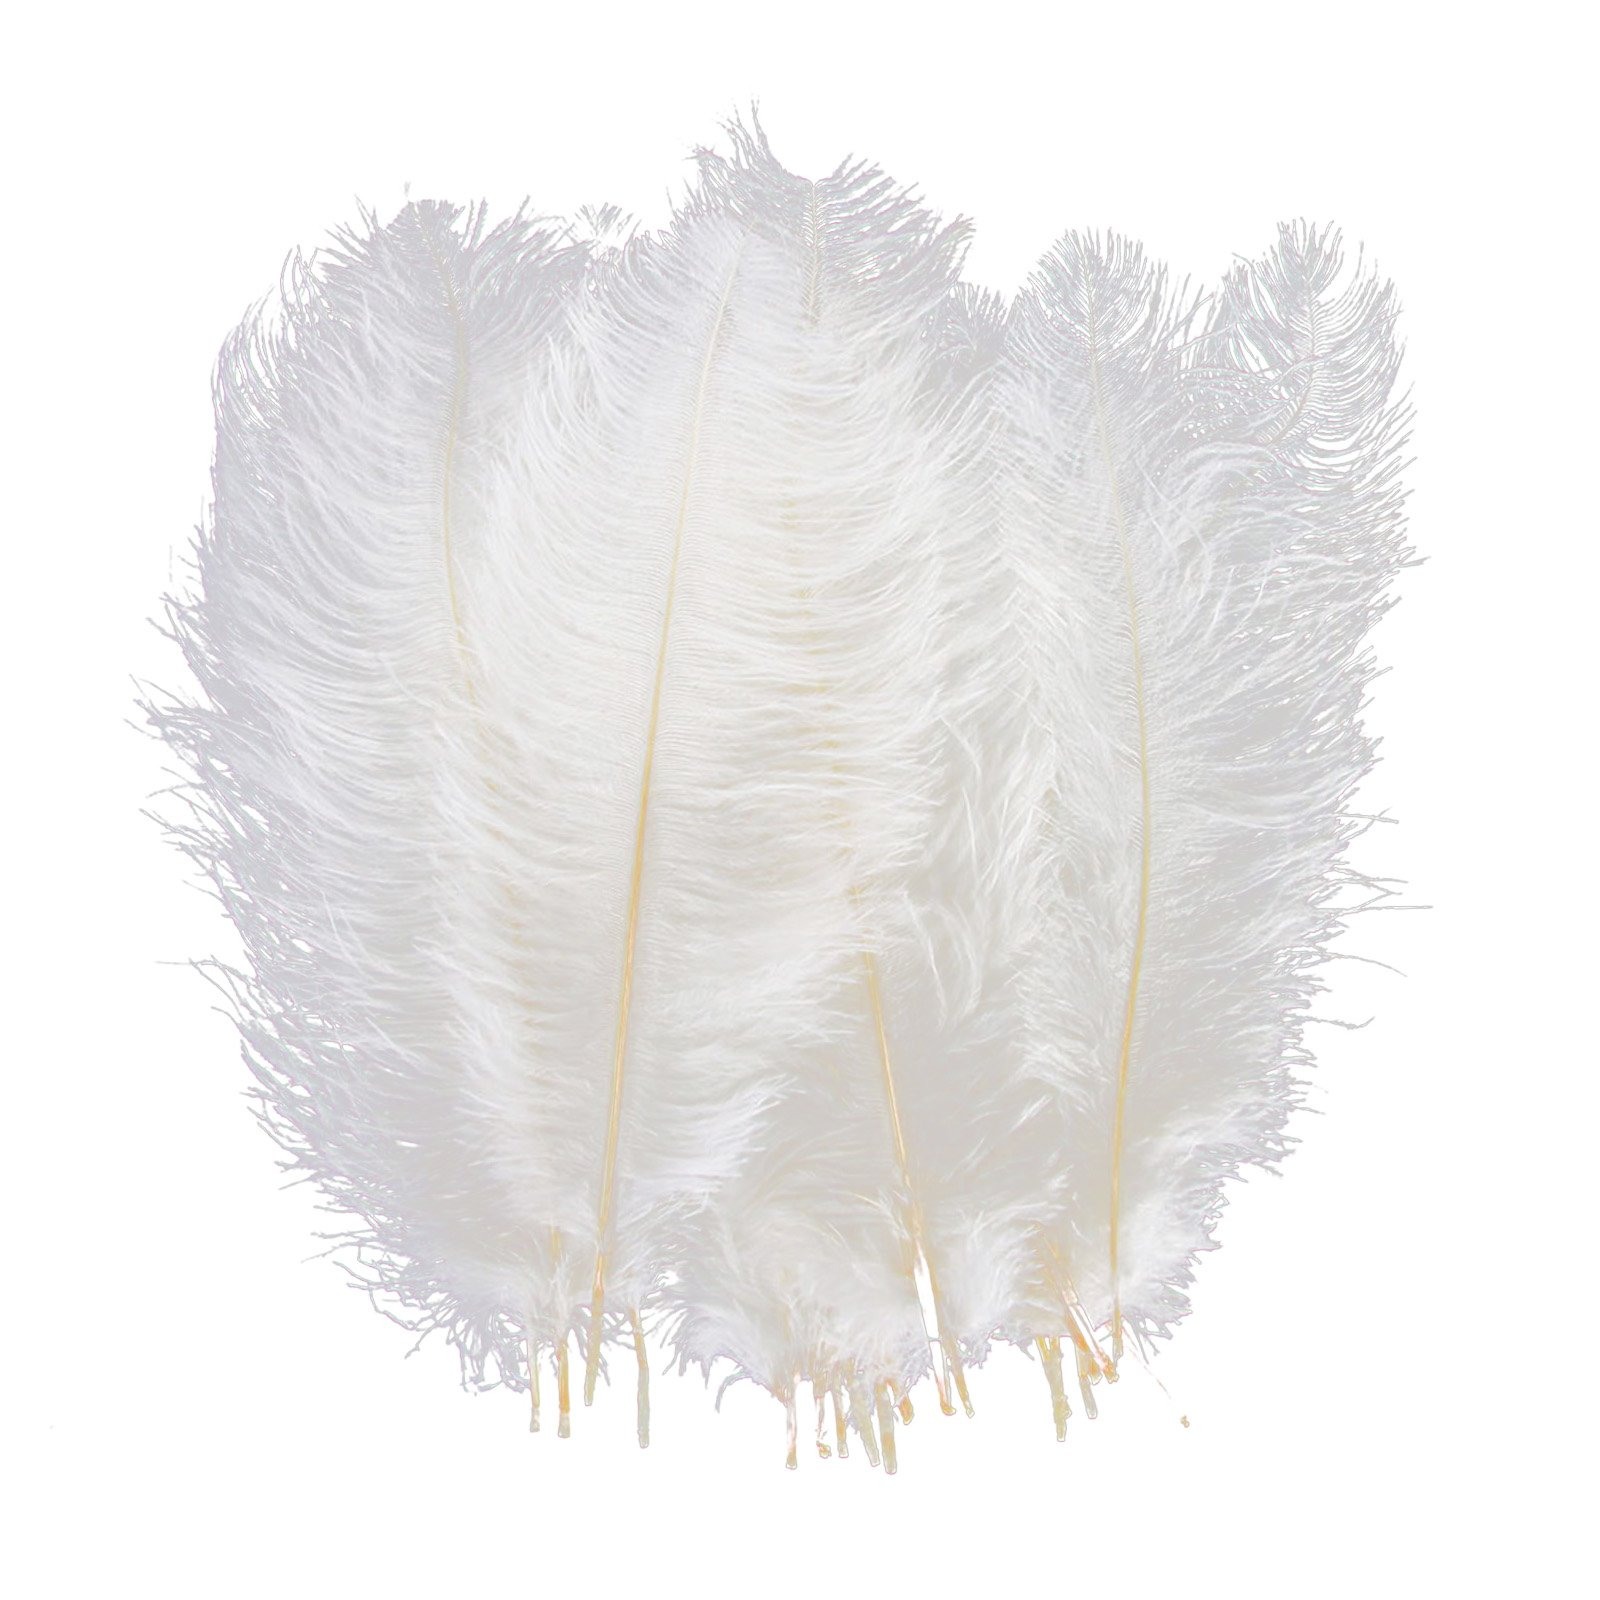 AWAYTR Natural 10-12inch(25-30cm) Ostrich Feathers Plume for Wedding Centerpieces Home Decoration White 50 Pcs